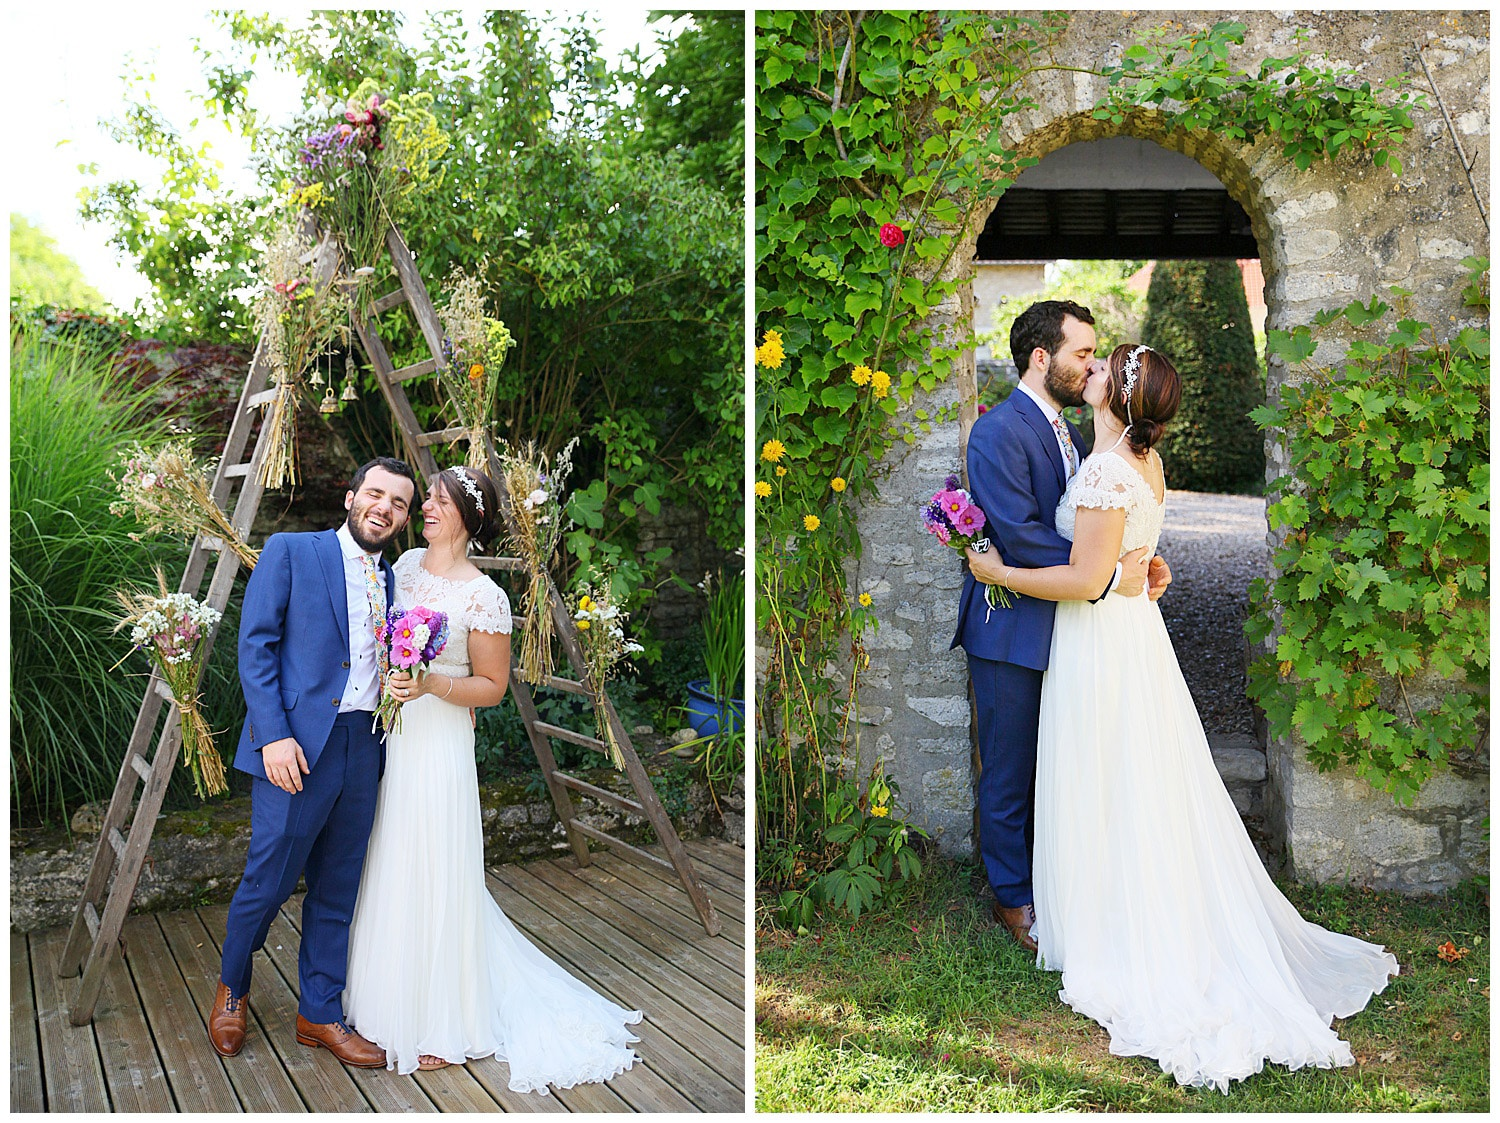 Marie-Calfopoulos-Provence-Paris-Photographer-American-British-Wedding-in-France-French-Countryside-Paris-Yvelines-Destination-Elopement